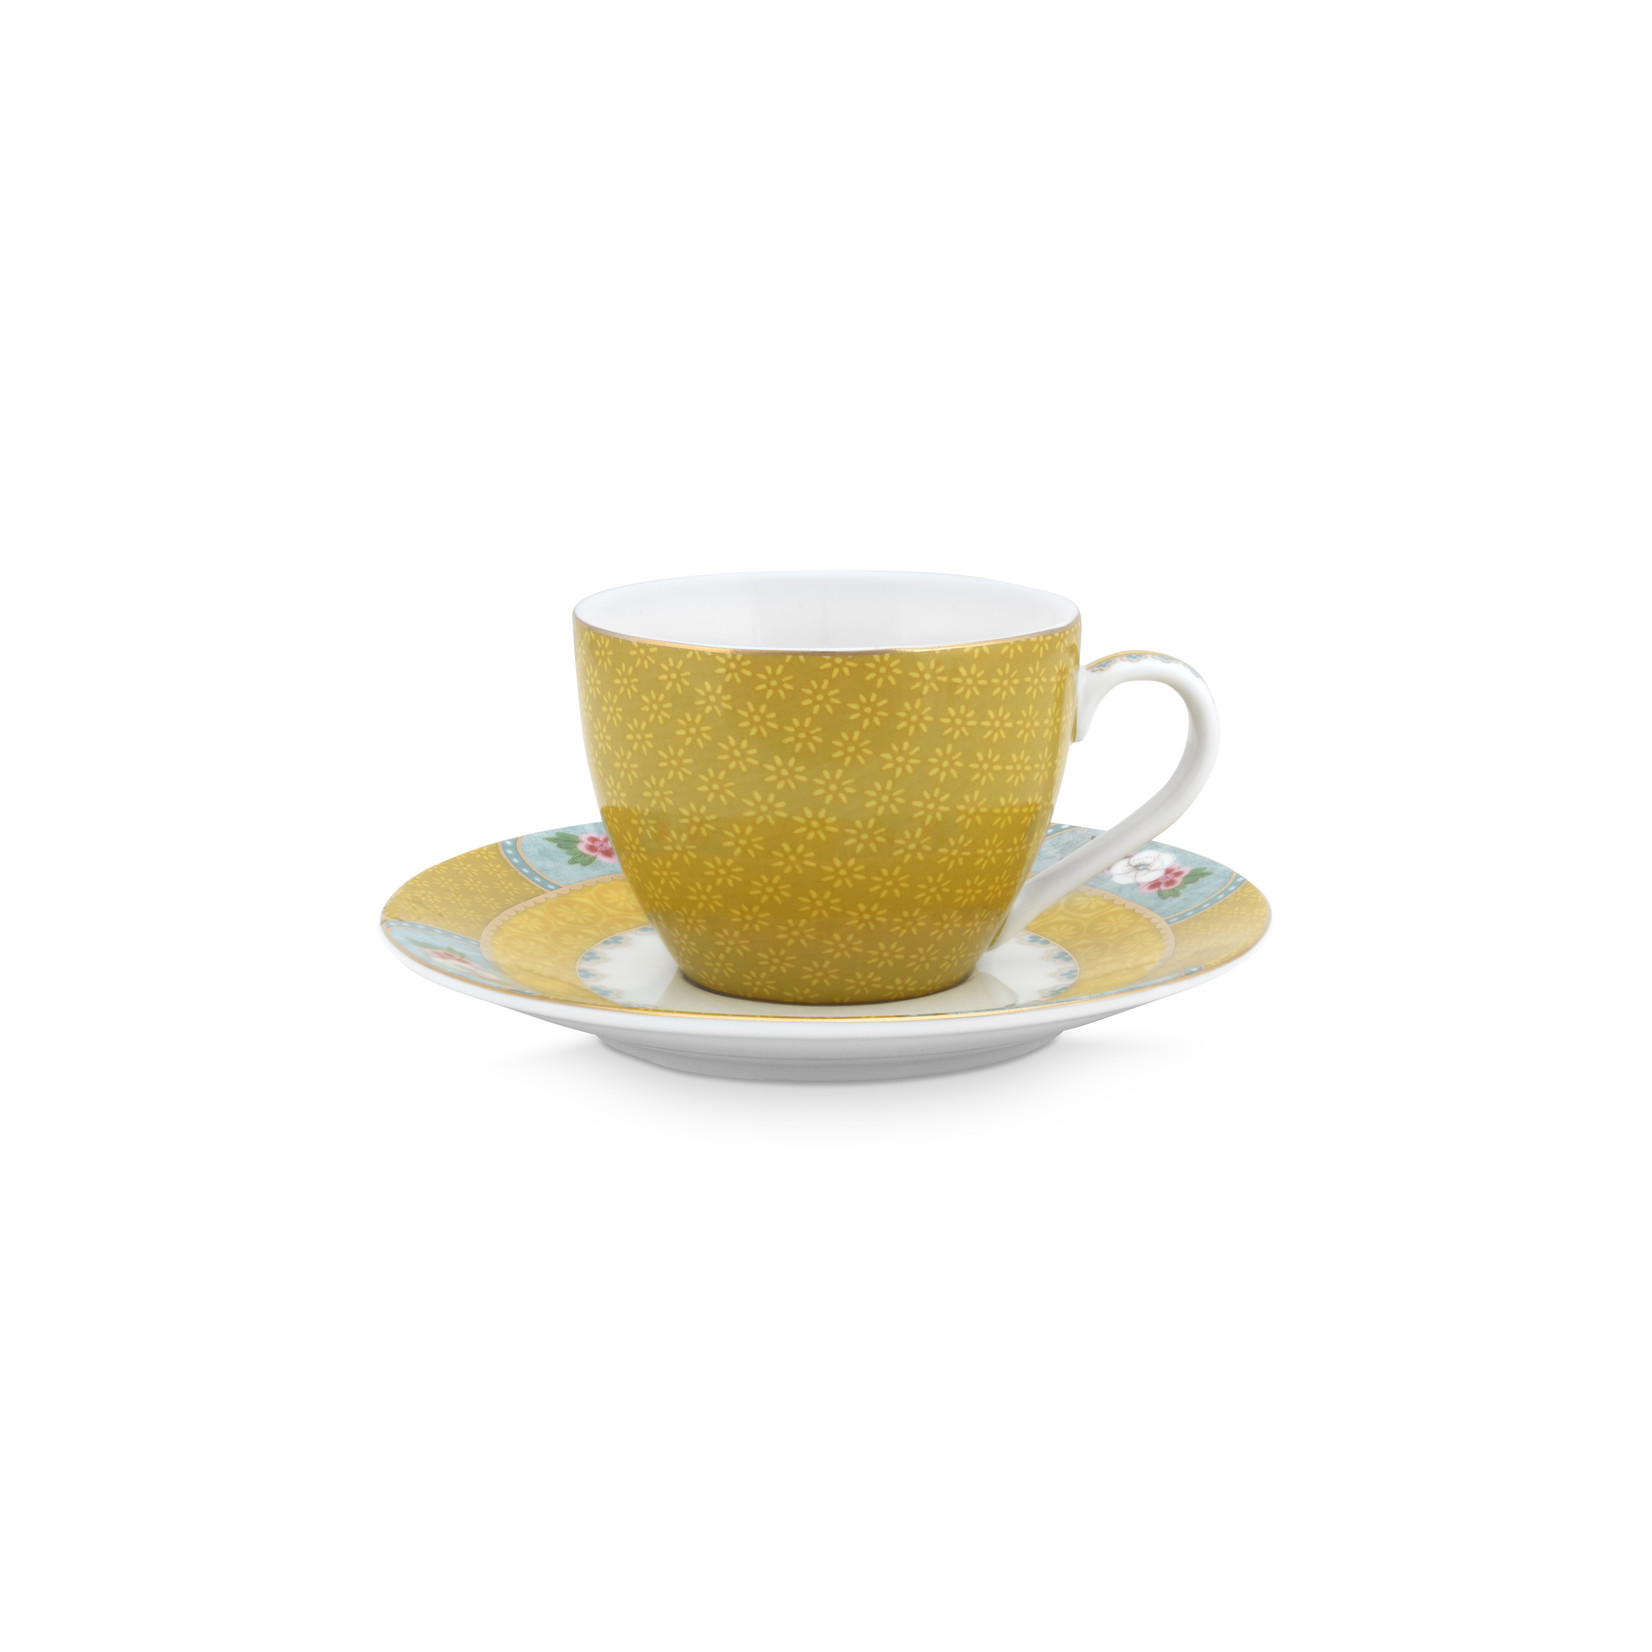 PIP Studio Espresso Cup & Saucer Blushing Birds Yellow 120ml